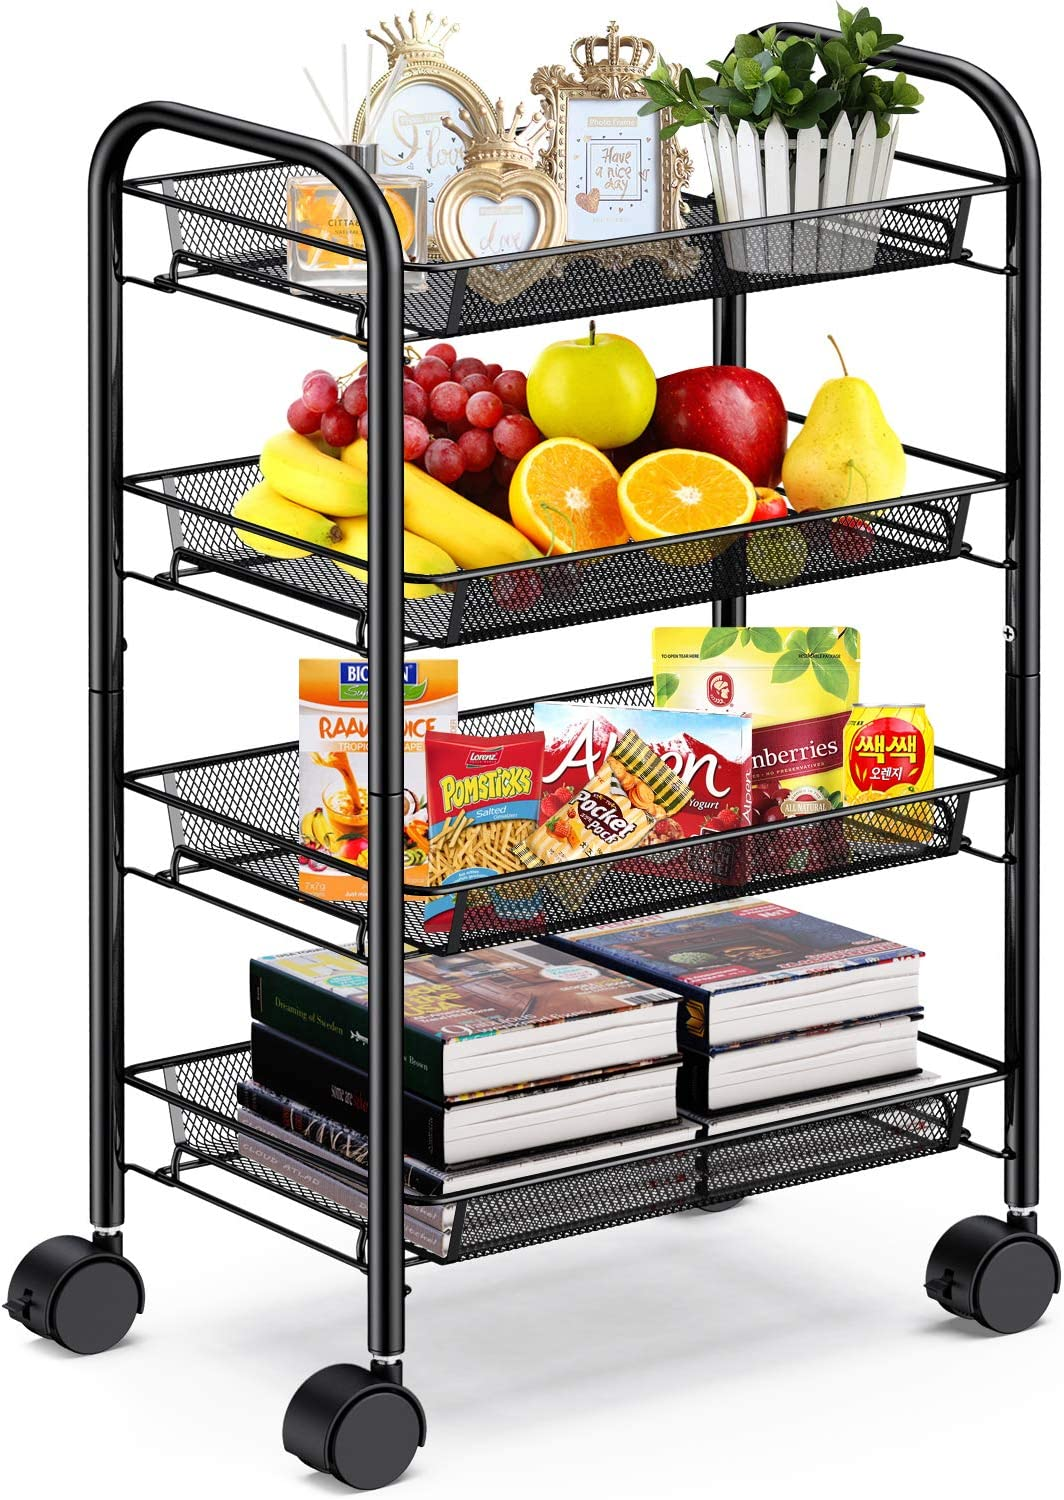 Pipishell 4-Tier Mesh Wire Rolling Cart Multifunction Utility Cart Metal Kitchen Storage Cart with 4 Wire Baskets Lockable Wheels for Home, Office, Kitchen (Black)